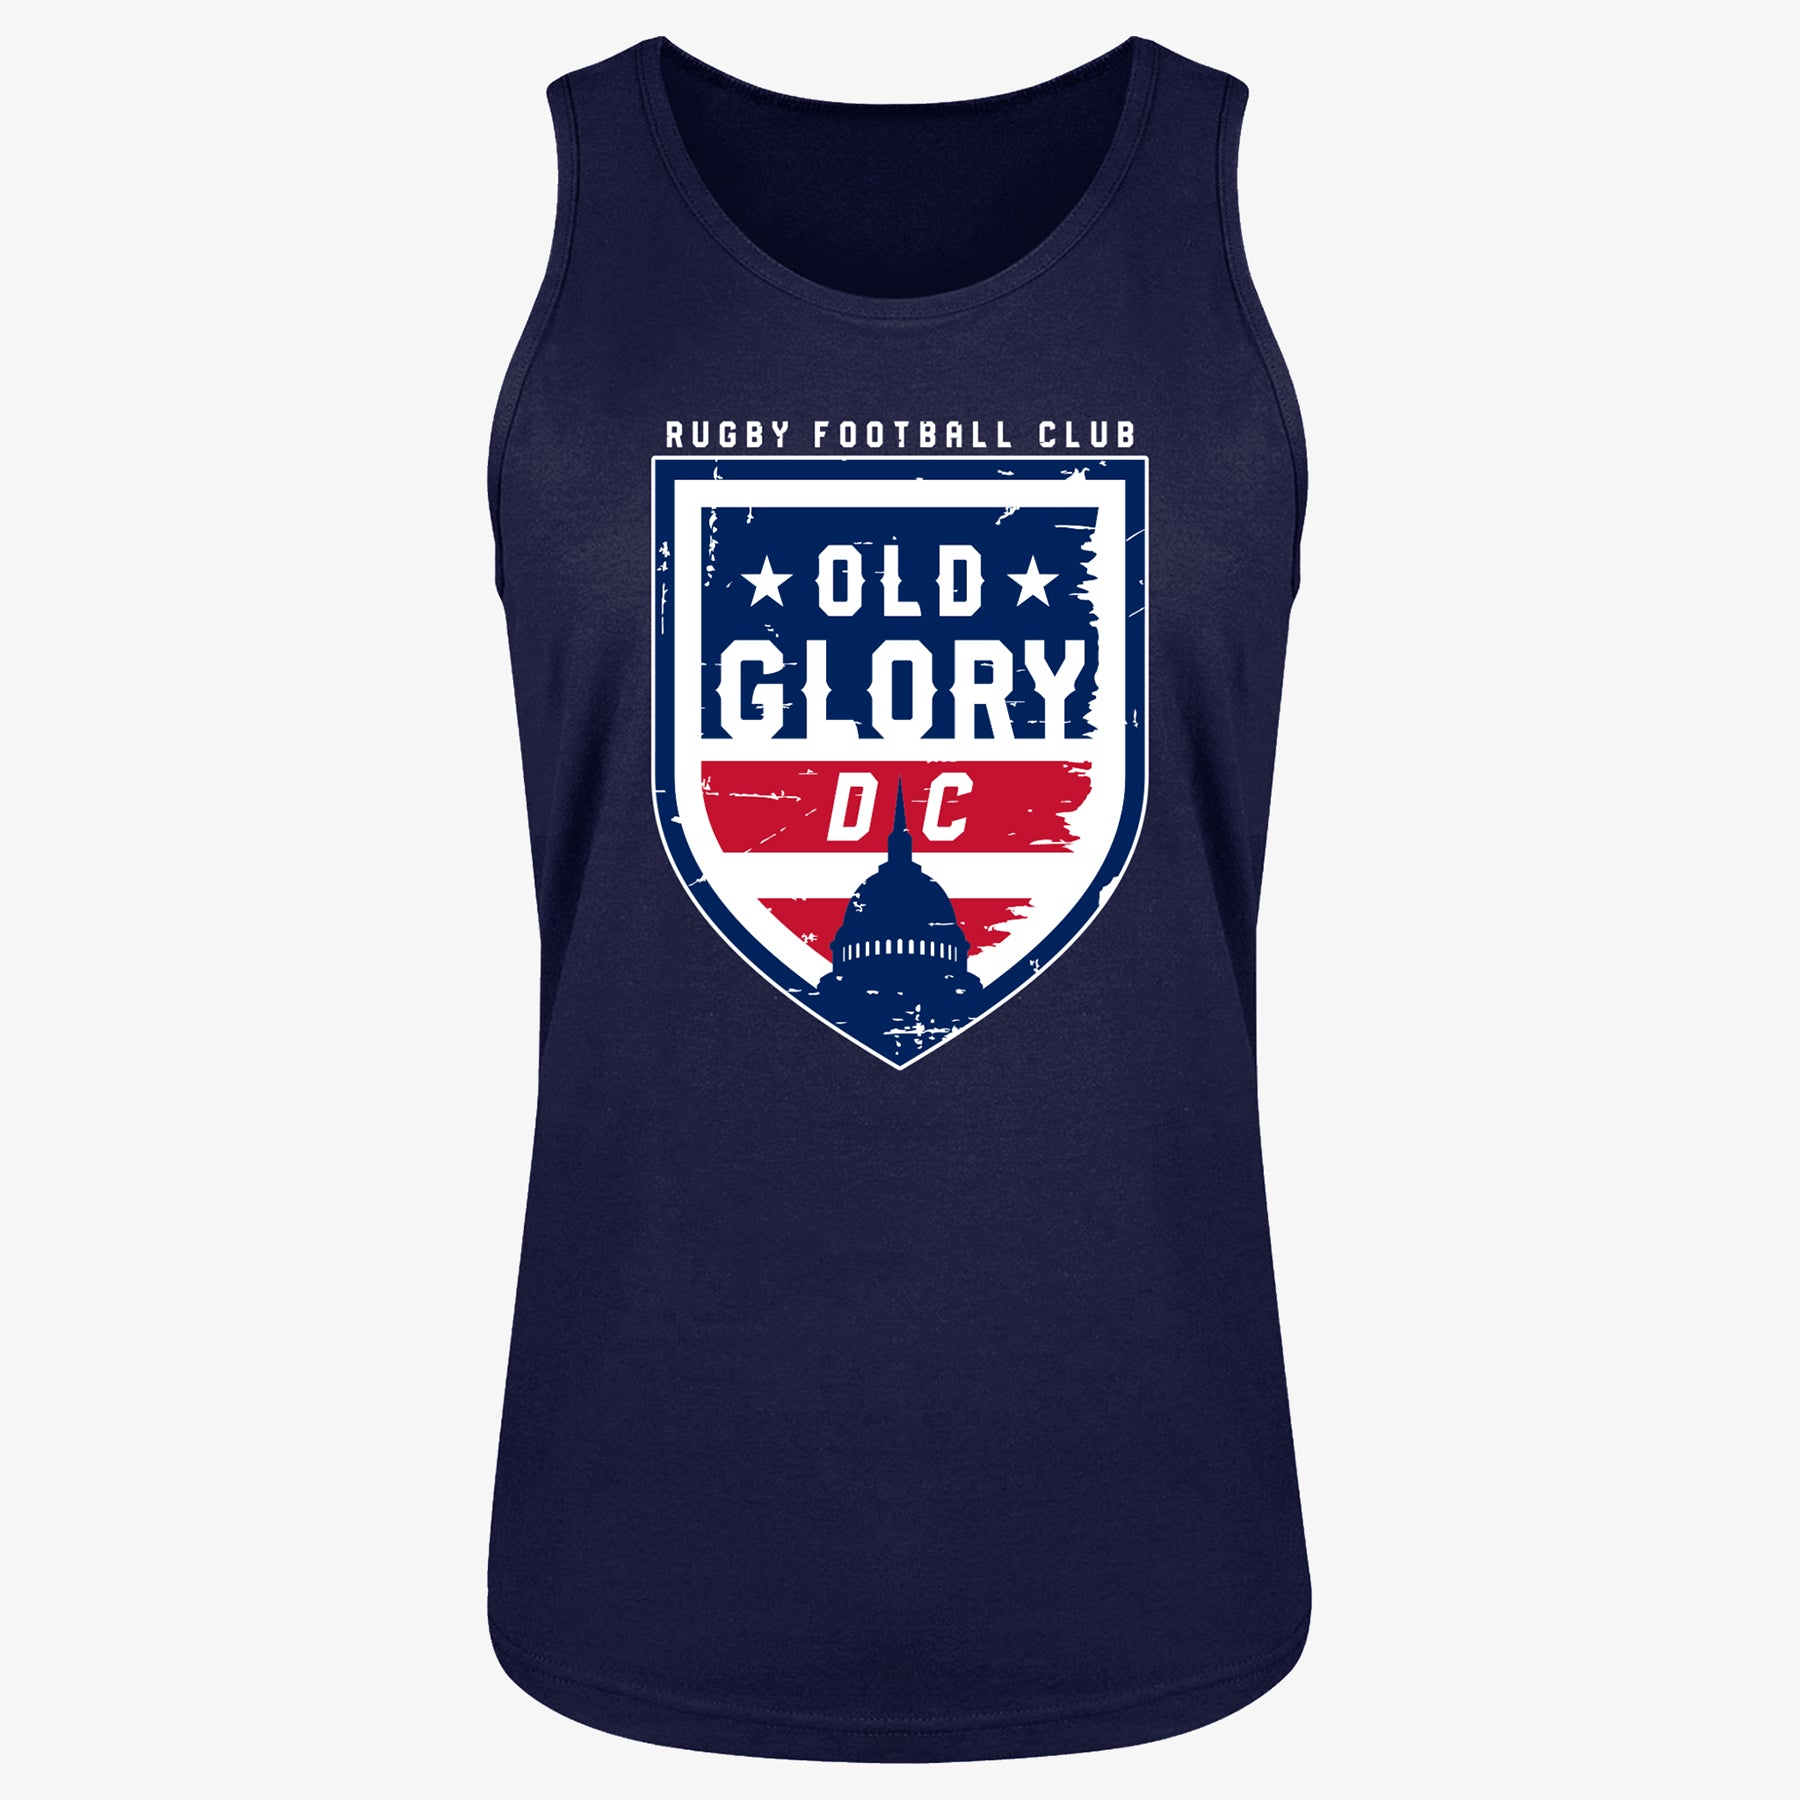 Old Glory DC Singlets World Rugby Shop